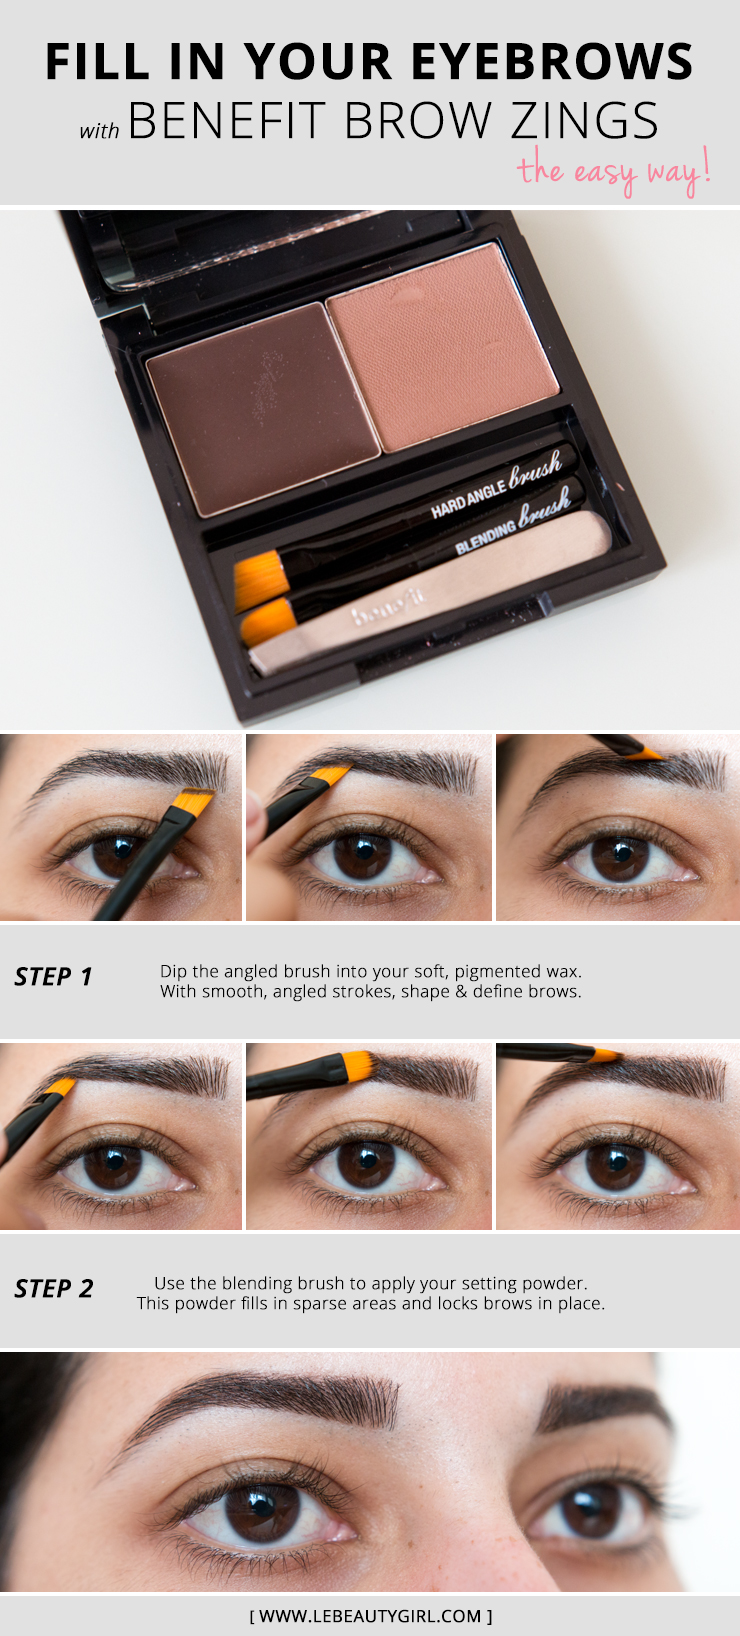 How To Fill In Eyebrows Benefit Brow Zings Brow Shaping Kit Tutorial